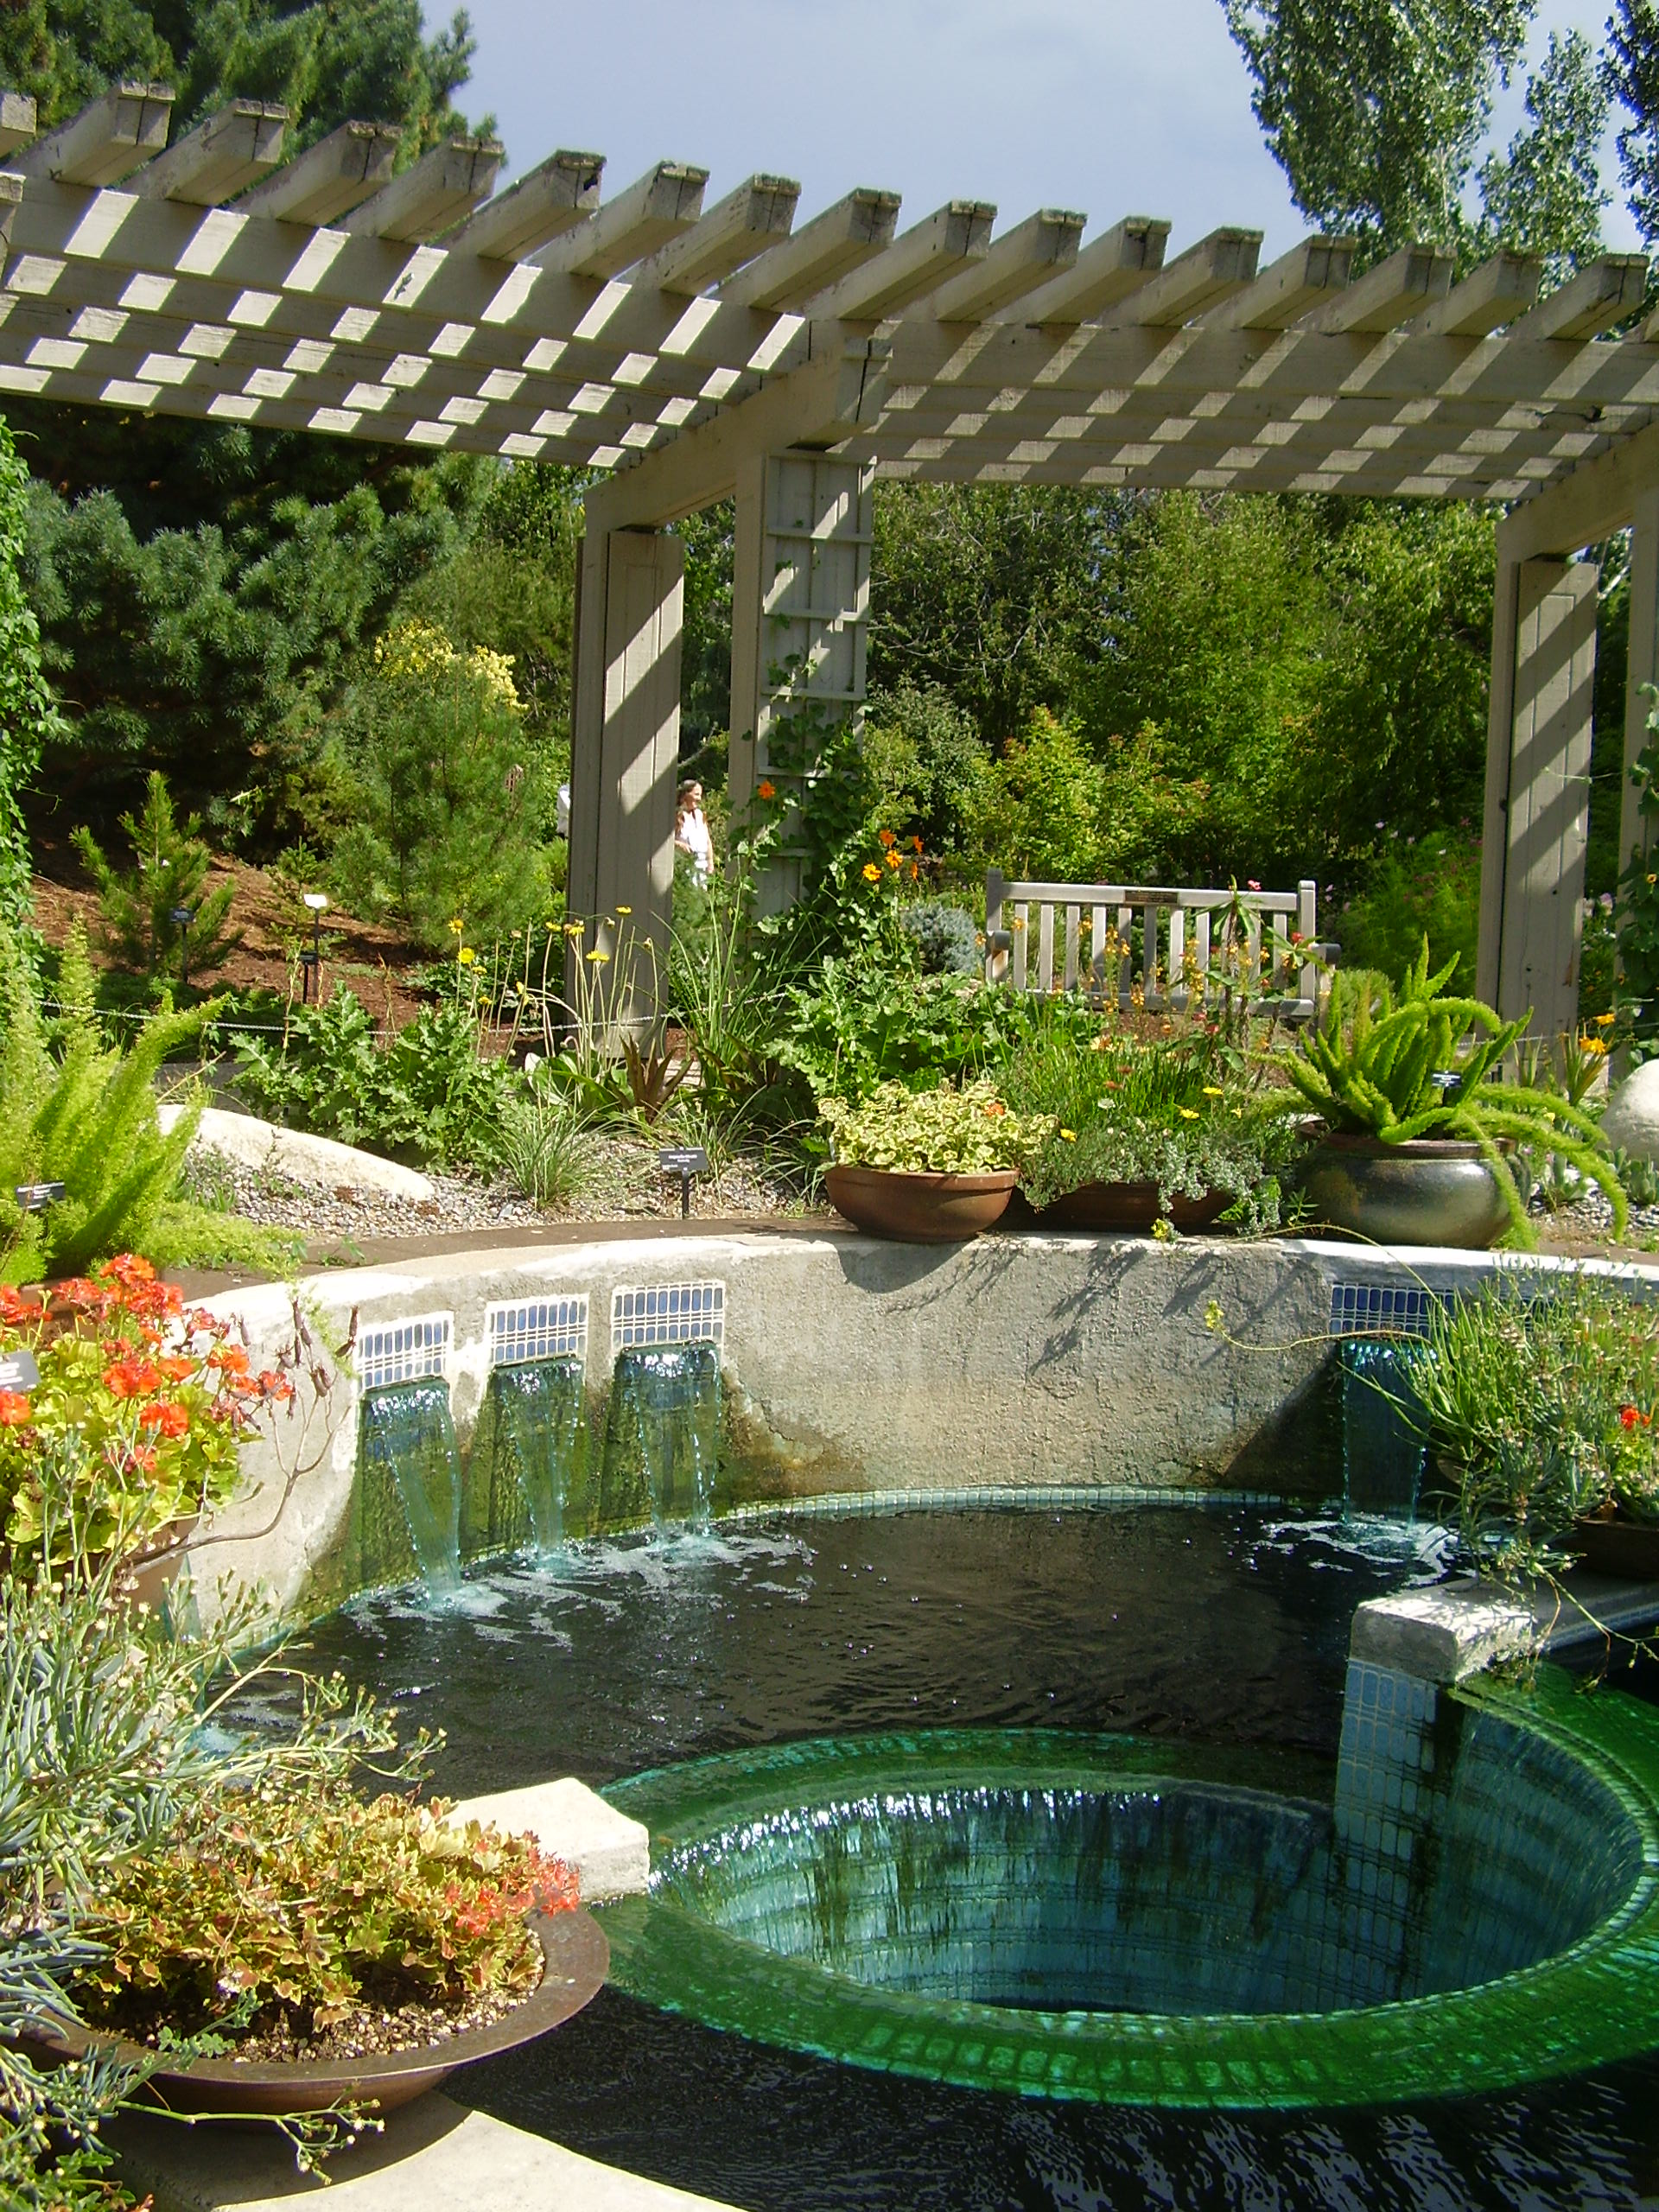 Some essential elements anyone should not forget in for Design your backyard landscape